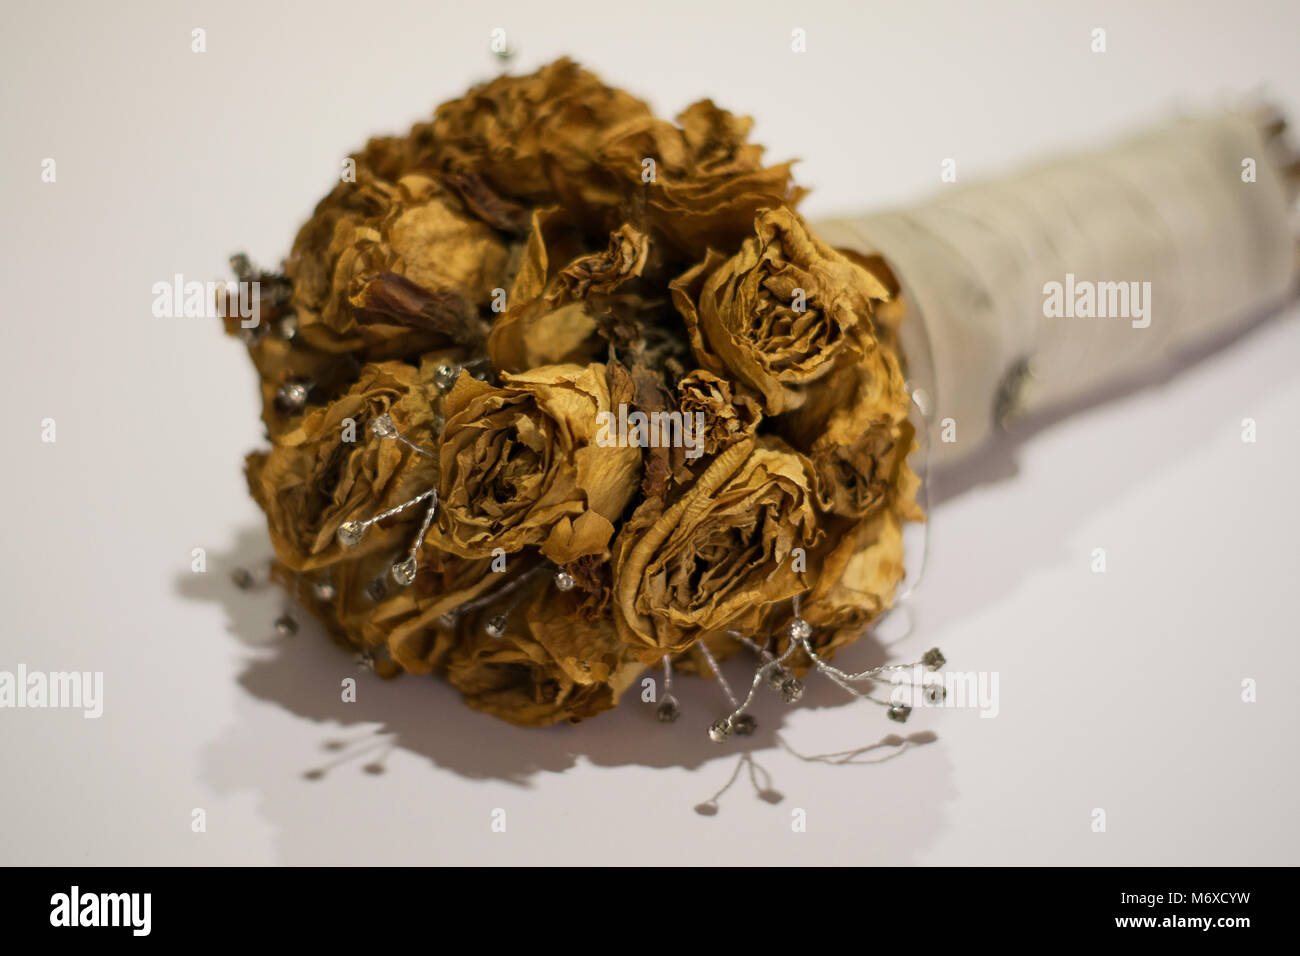 Bouquet of dead roses used in wedding - Stock Image